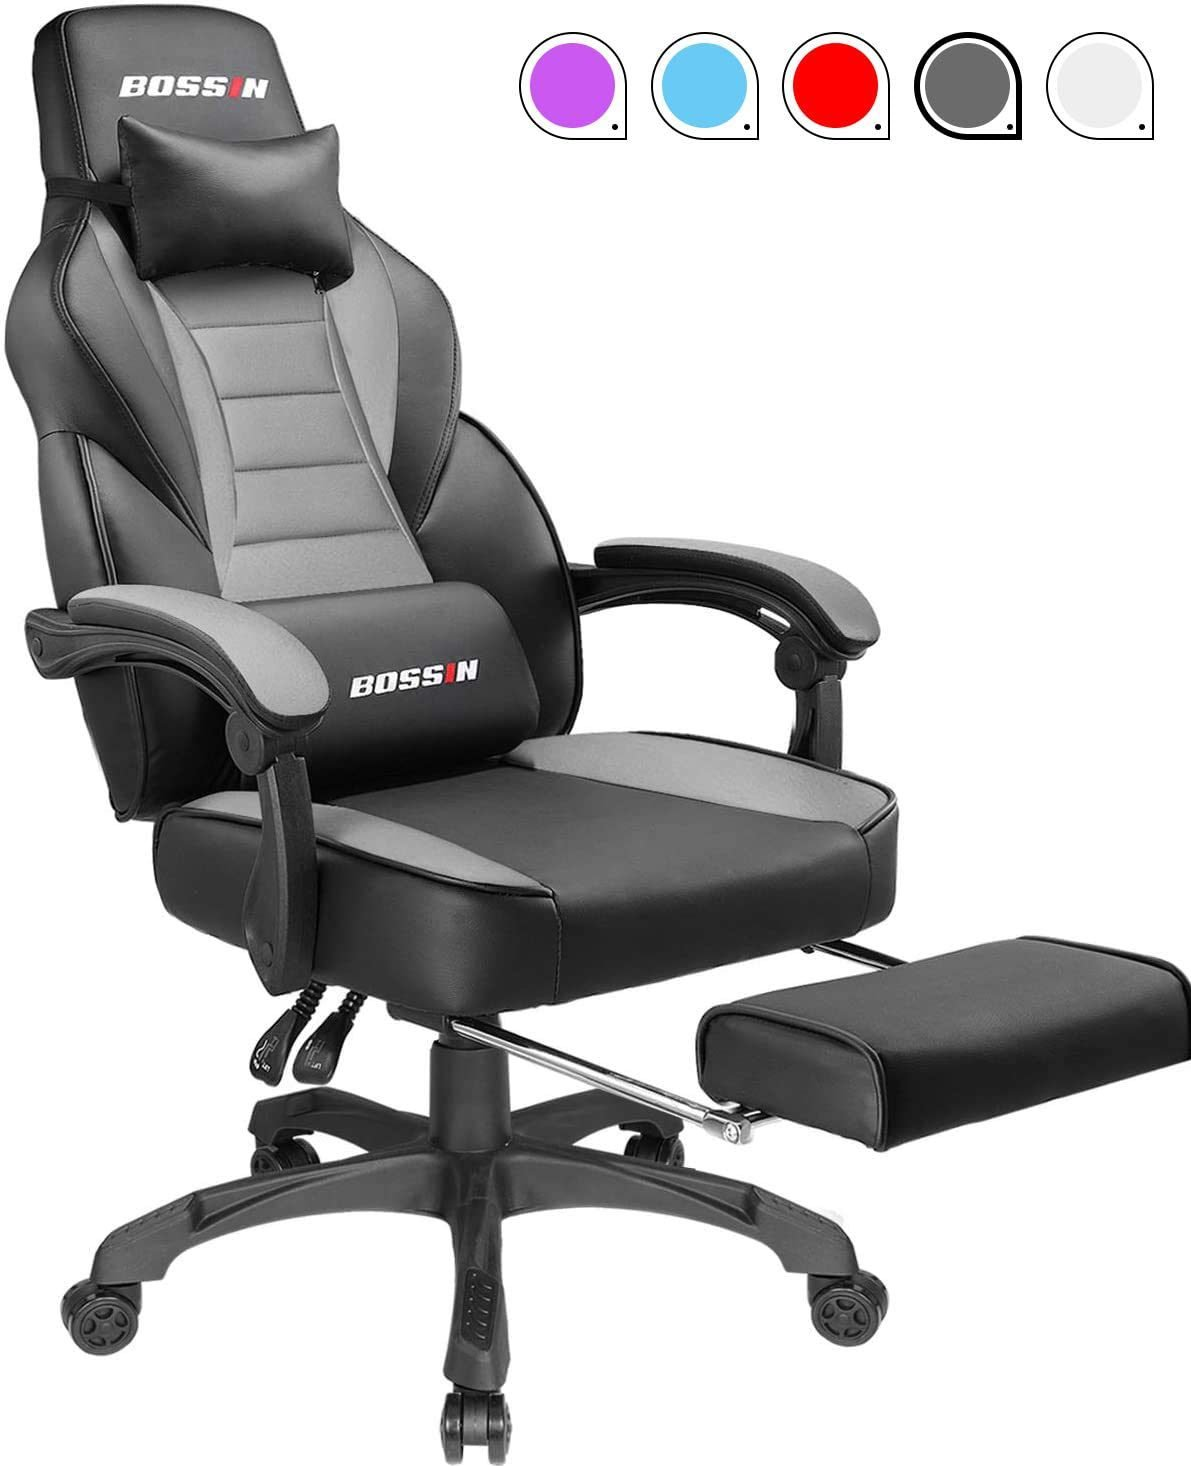 Ergonomic High-Back Chair